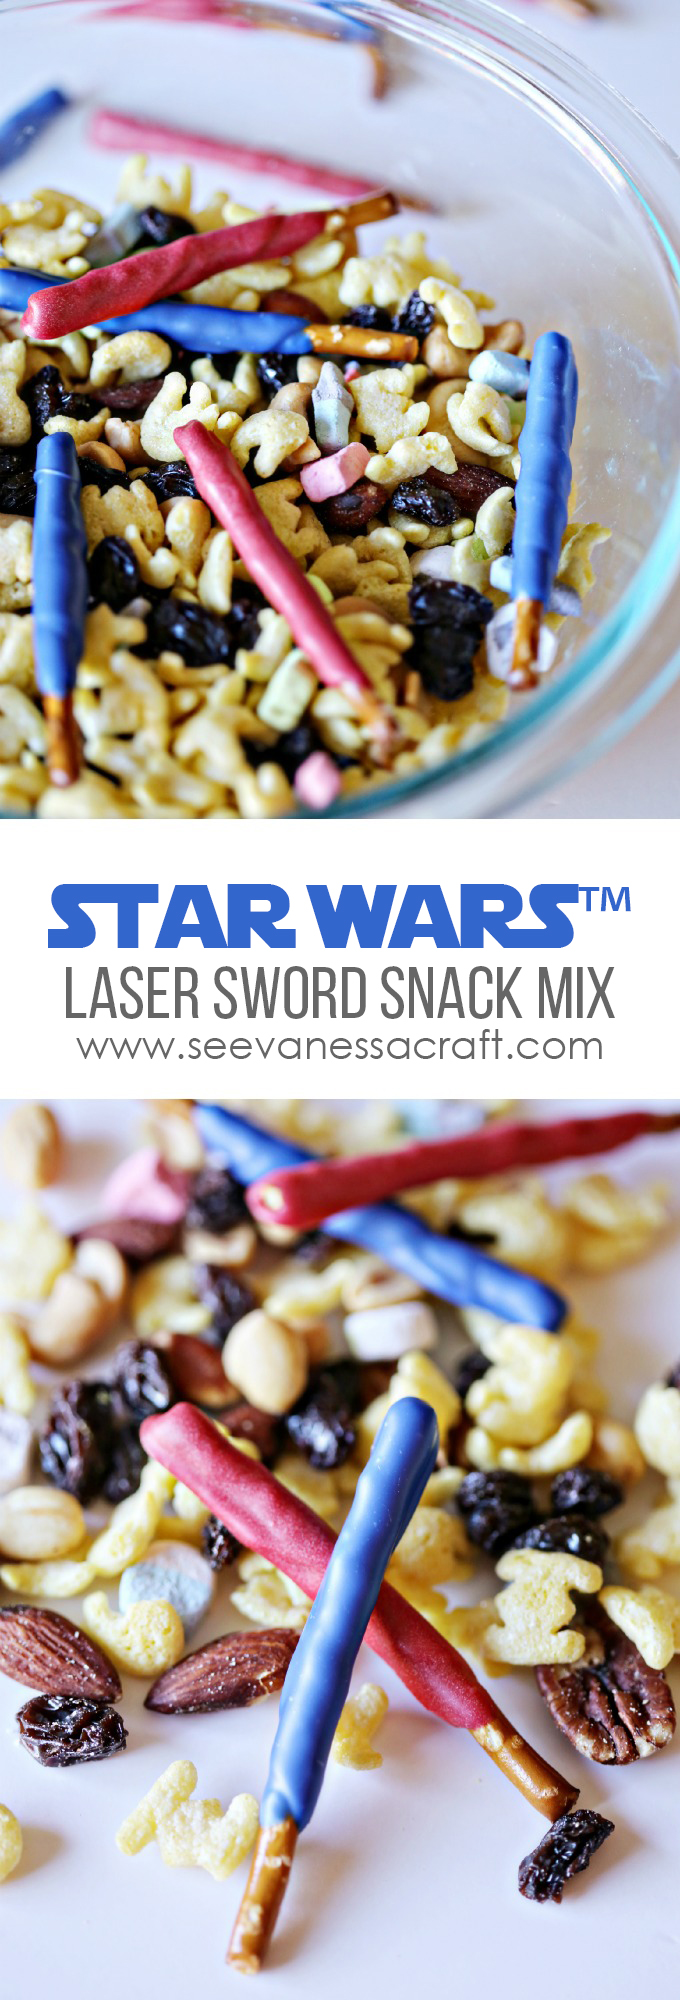 Star Wars Snack Mix copy